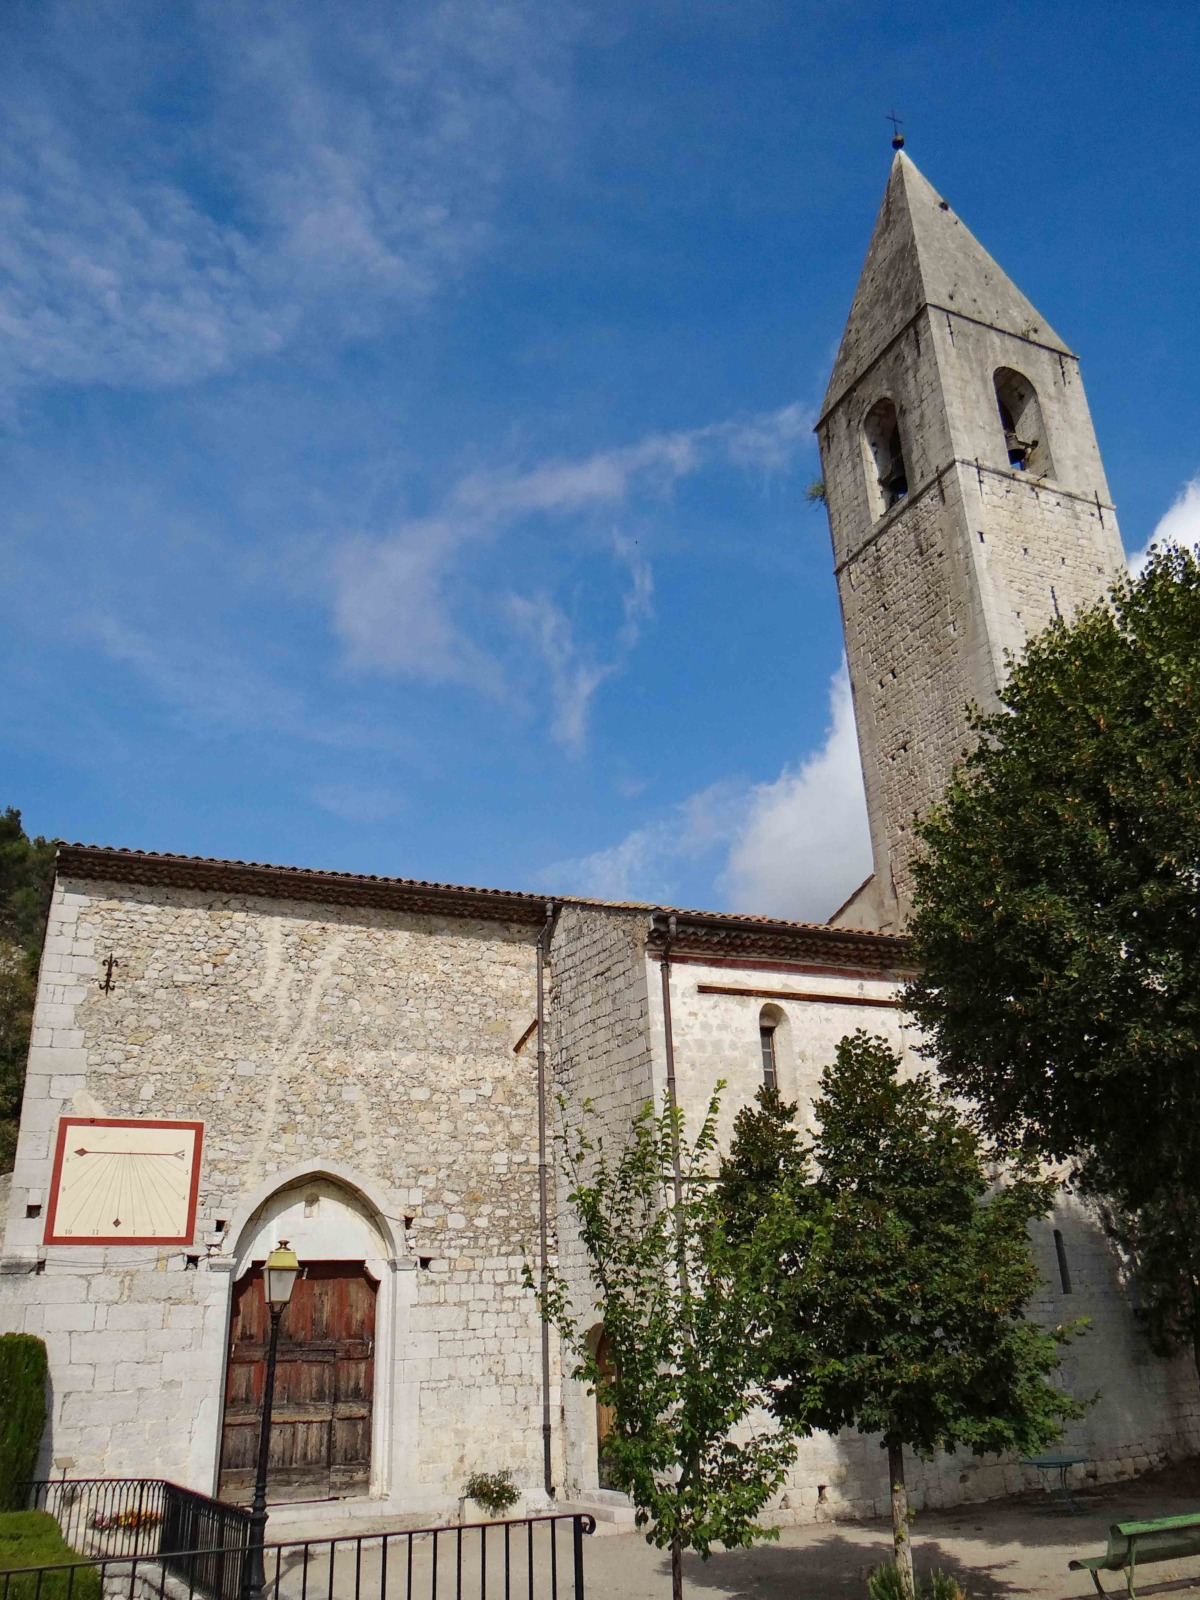 The church of Sainte-Marie de l'Assomption © Mossot - licence [CC BY-SA 3.0] from Wikimedia Commons